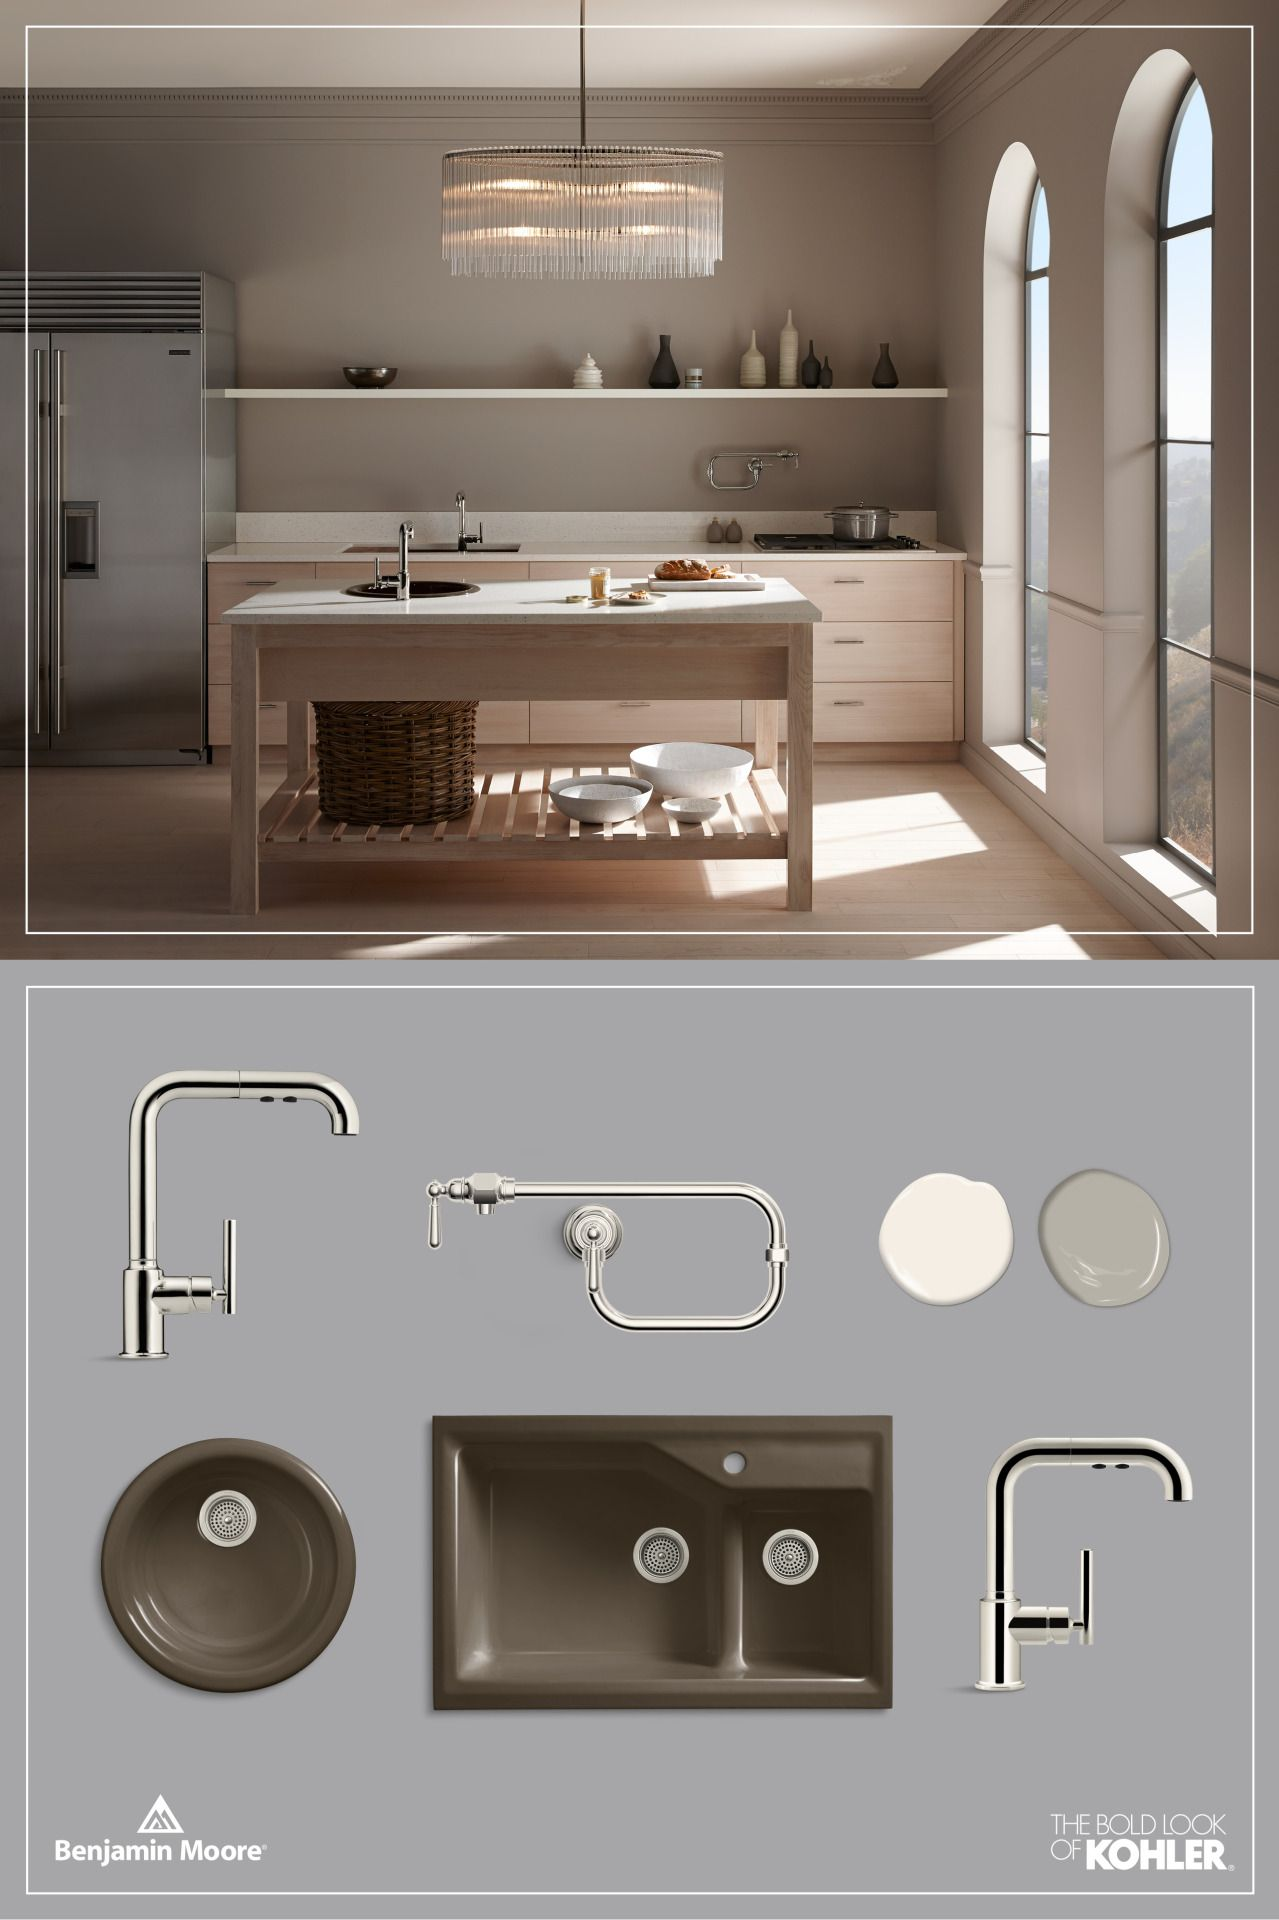 purist kitchen faucet costco cabinets kohler product bar